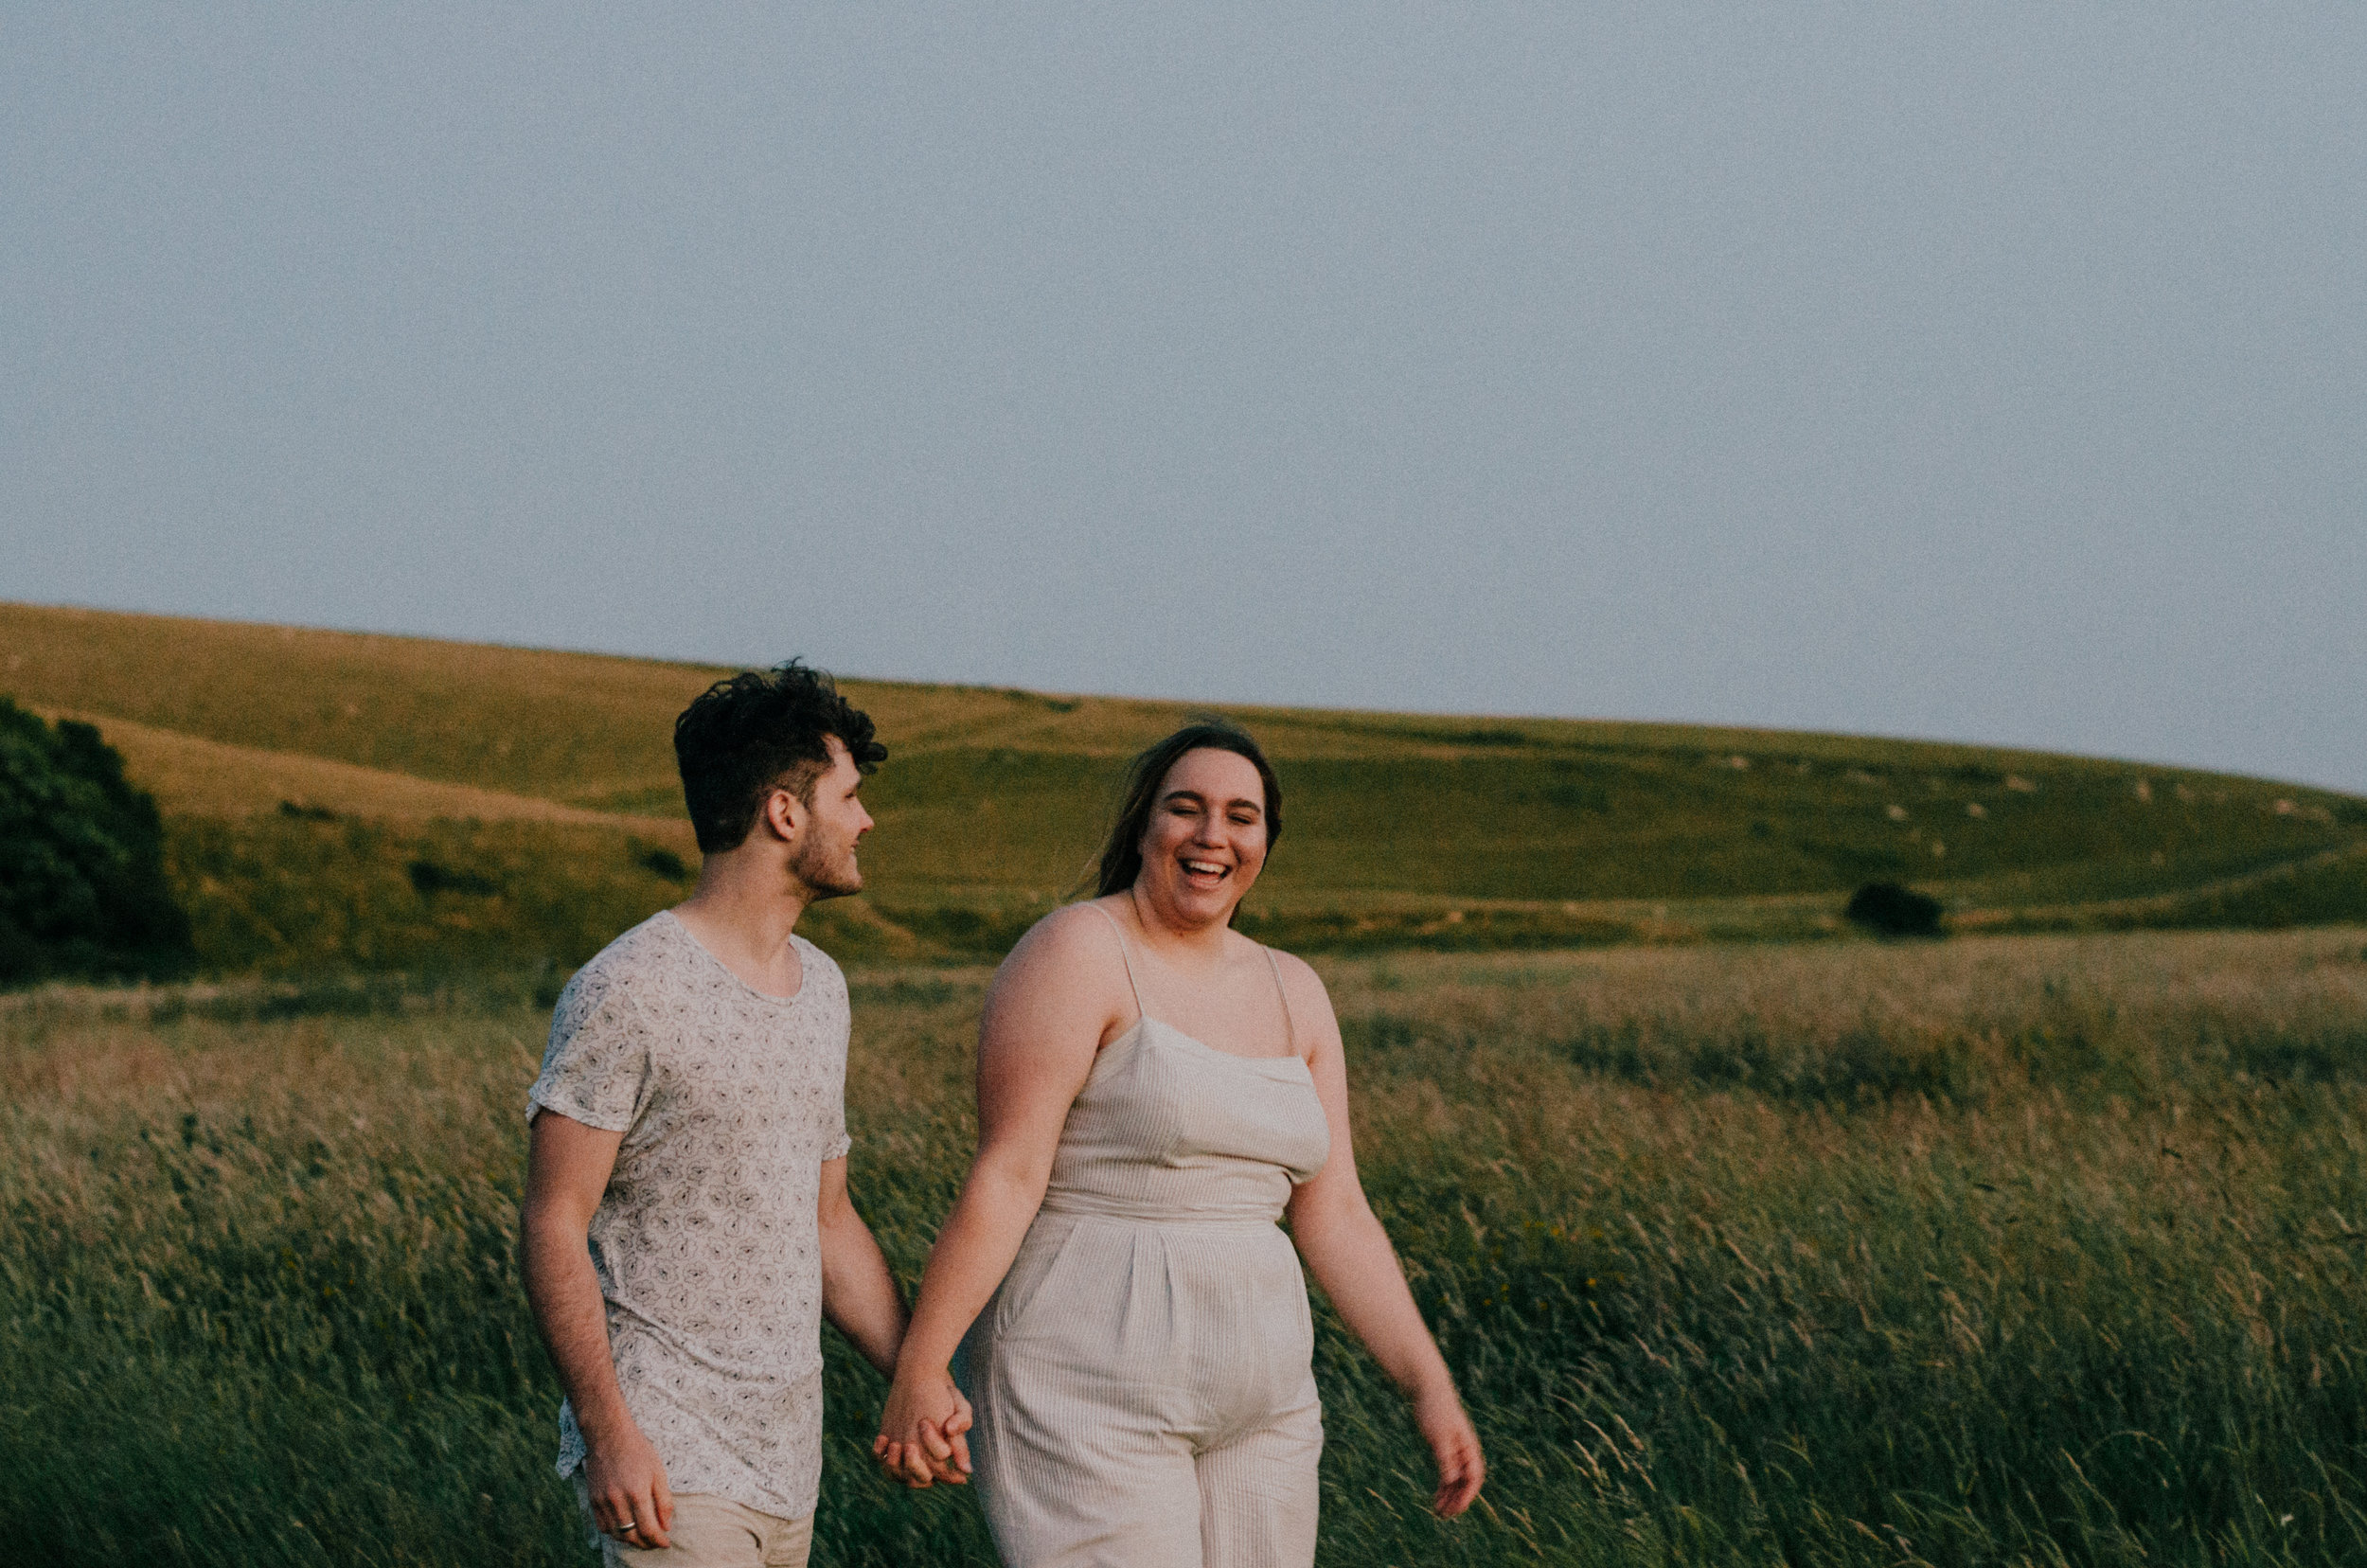 Rebecca & Dougie - Cuckmere Haven - Couple Session - Aiste Saulyte Photography-190.jpg